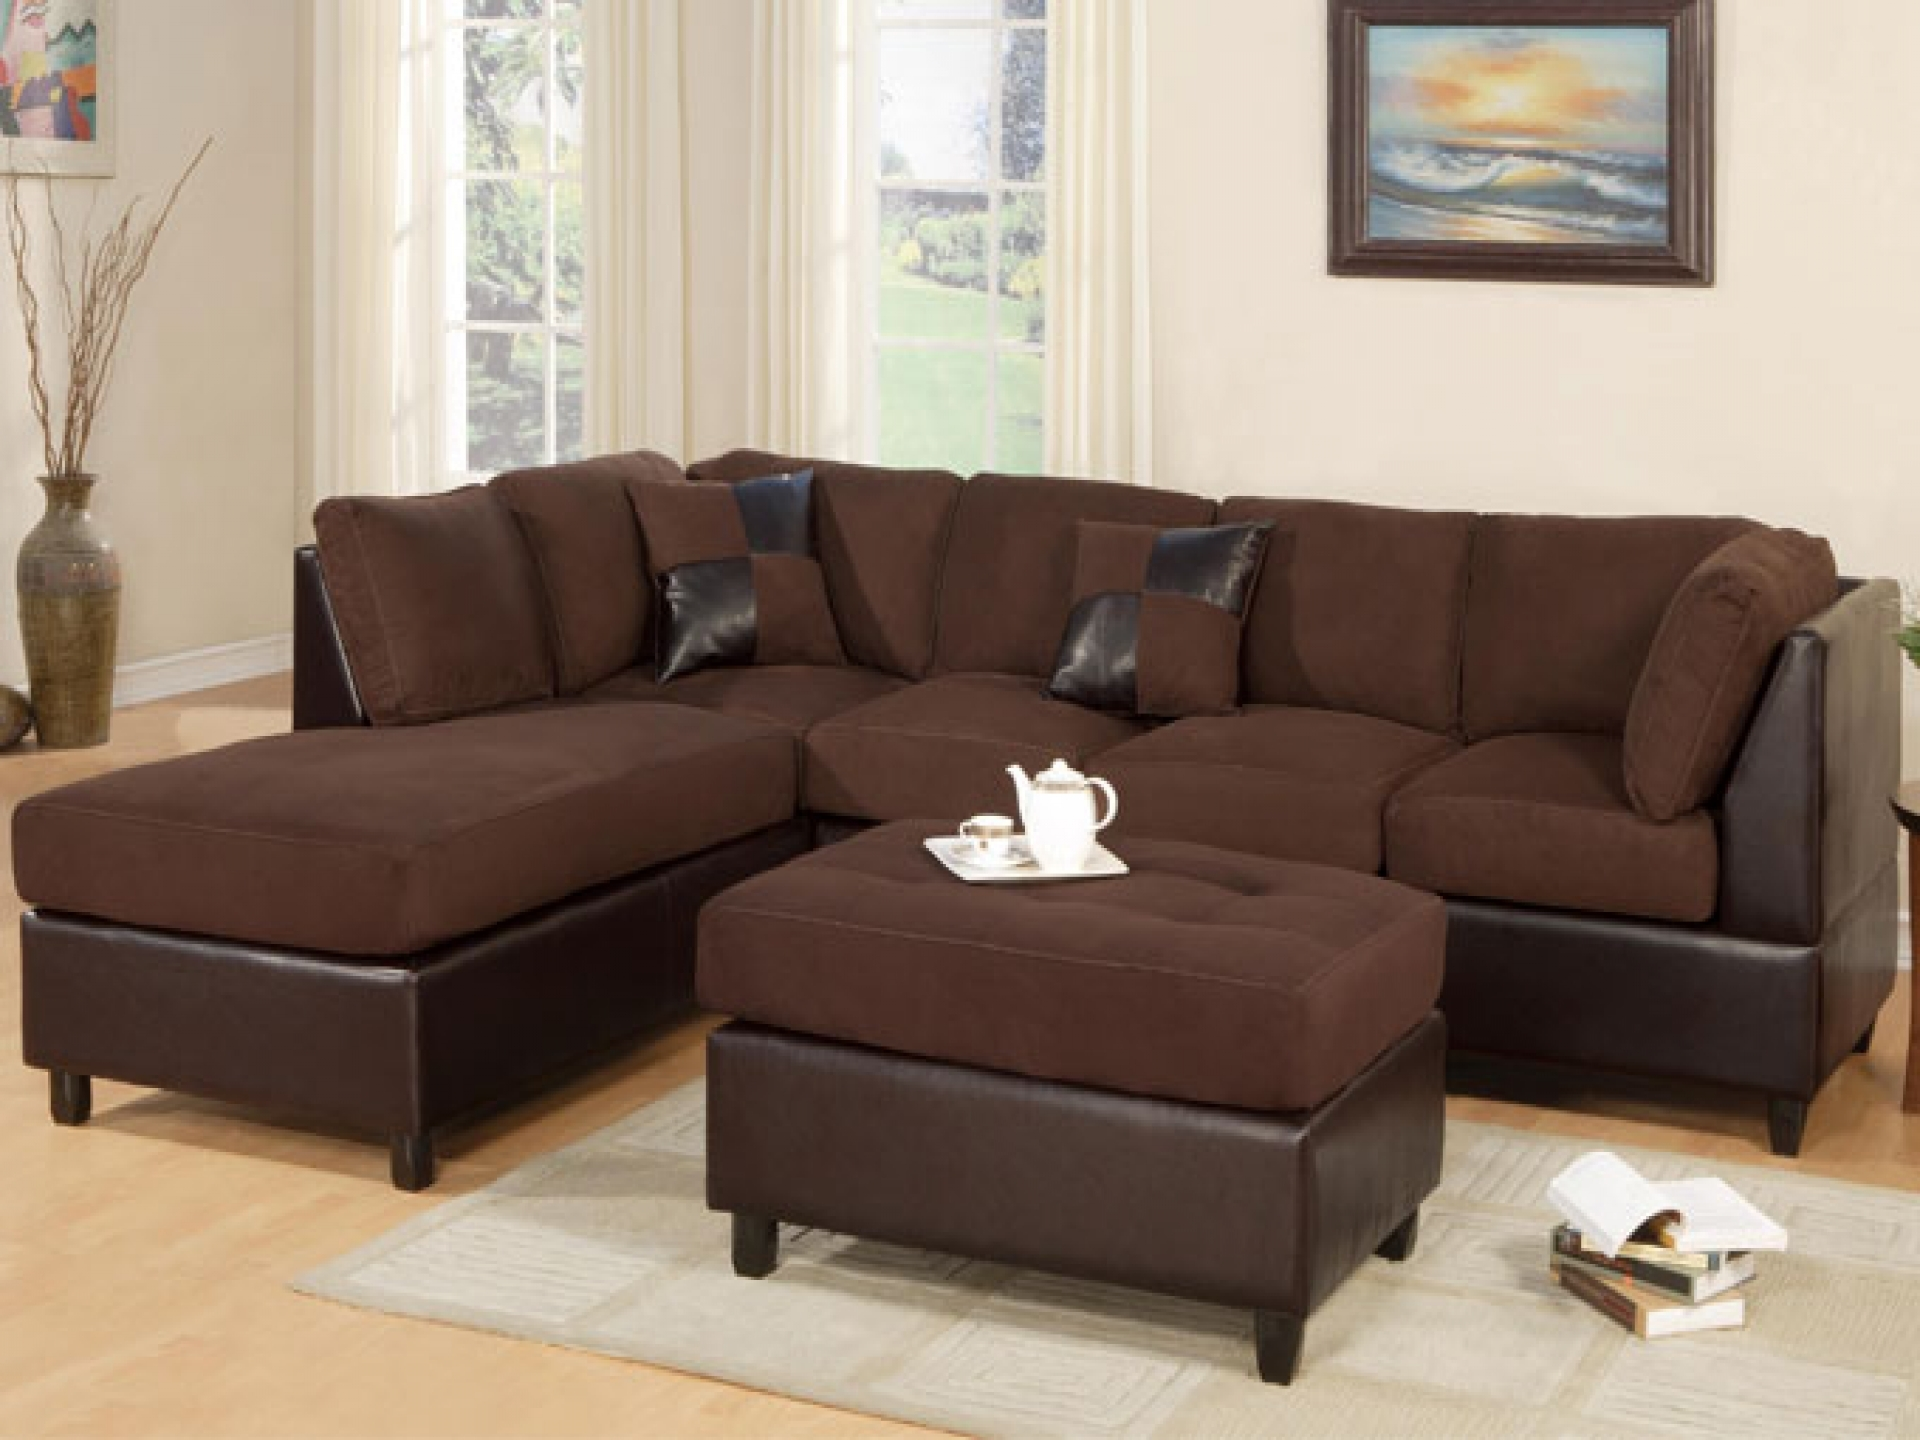 sofa furniture livingroom chaise sleeper apartment sectional appealing canada toronto with products beds virgil bedroom marvelous size and vancouver small